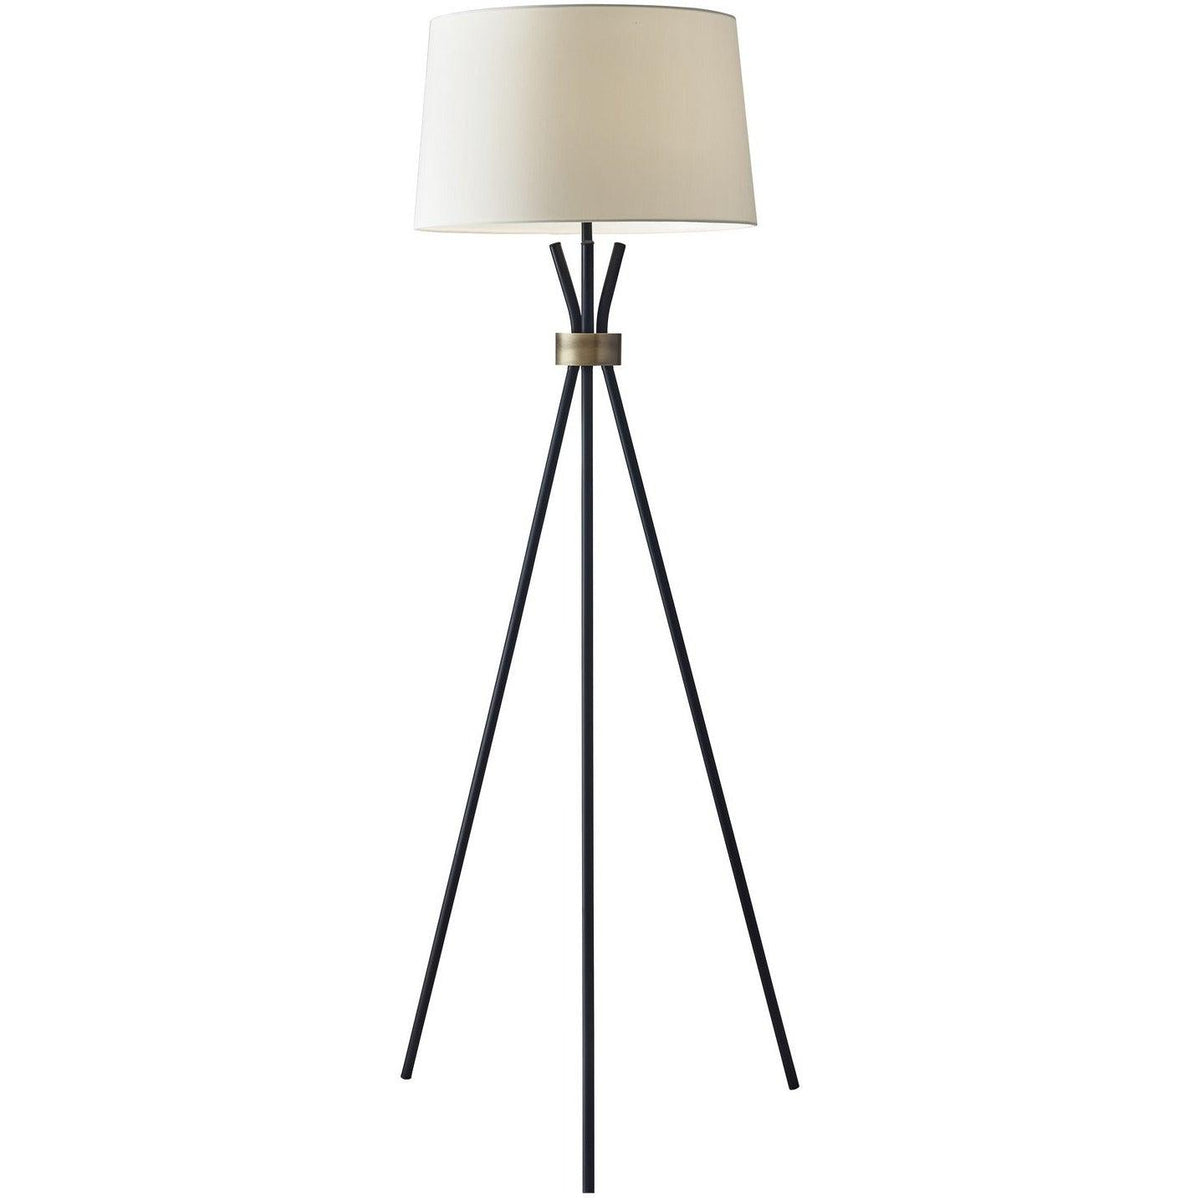 Adesso Home - 3835-01 - One Light Floor Lamp - Benson - Black w. antique brass accent